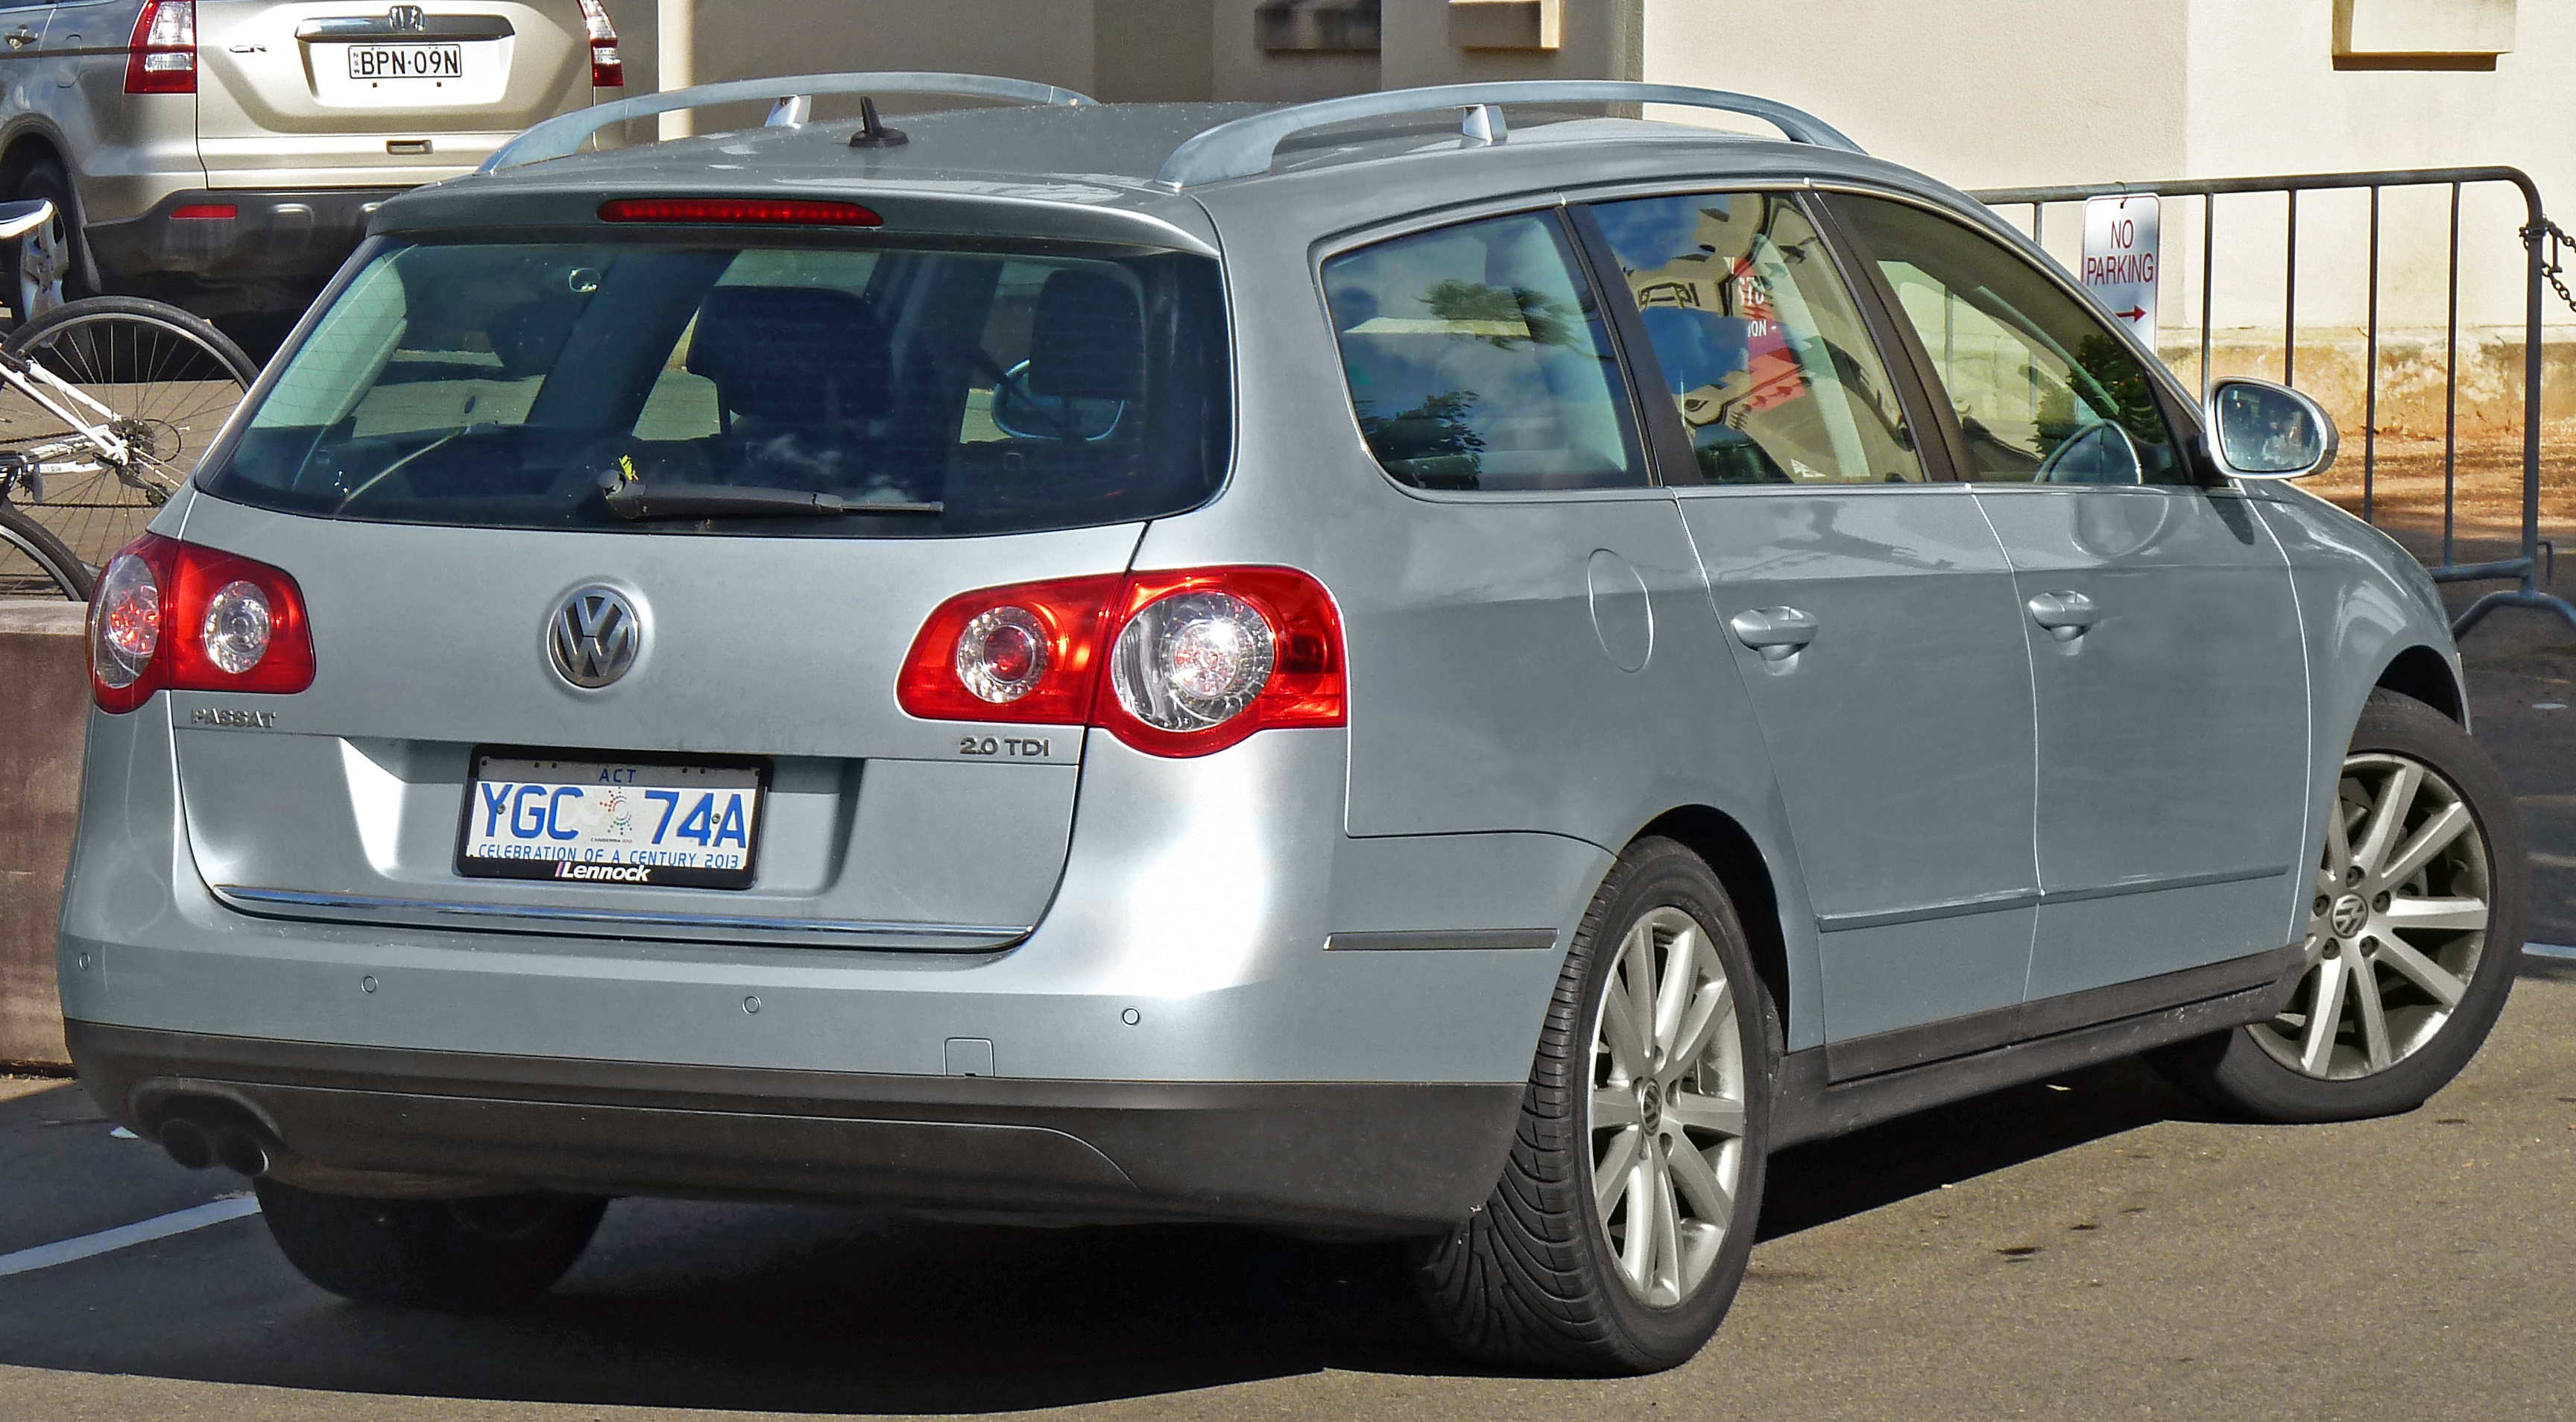 file 2006 2010 volkswagen passat 3c 2 0 tdi station wagon 2011 03 23 jpg wikimedia commons. Black Bedroom Furniture Sets. Home Design Ideas